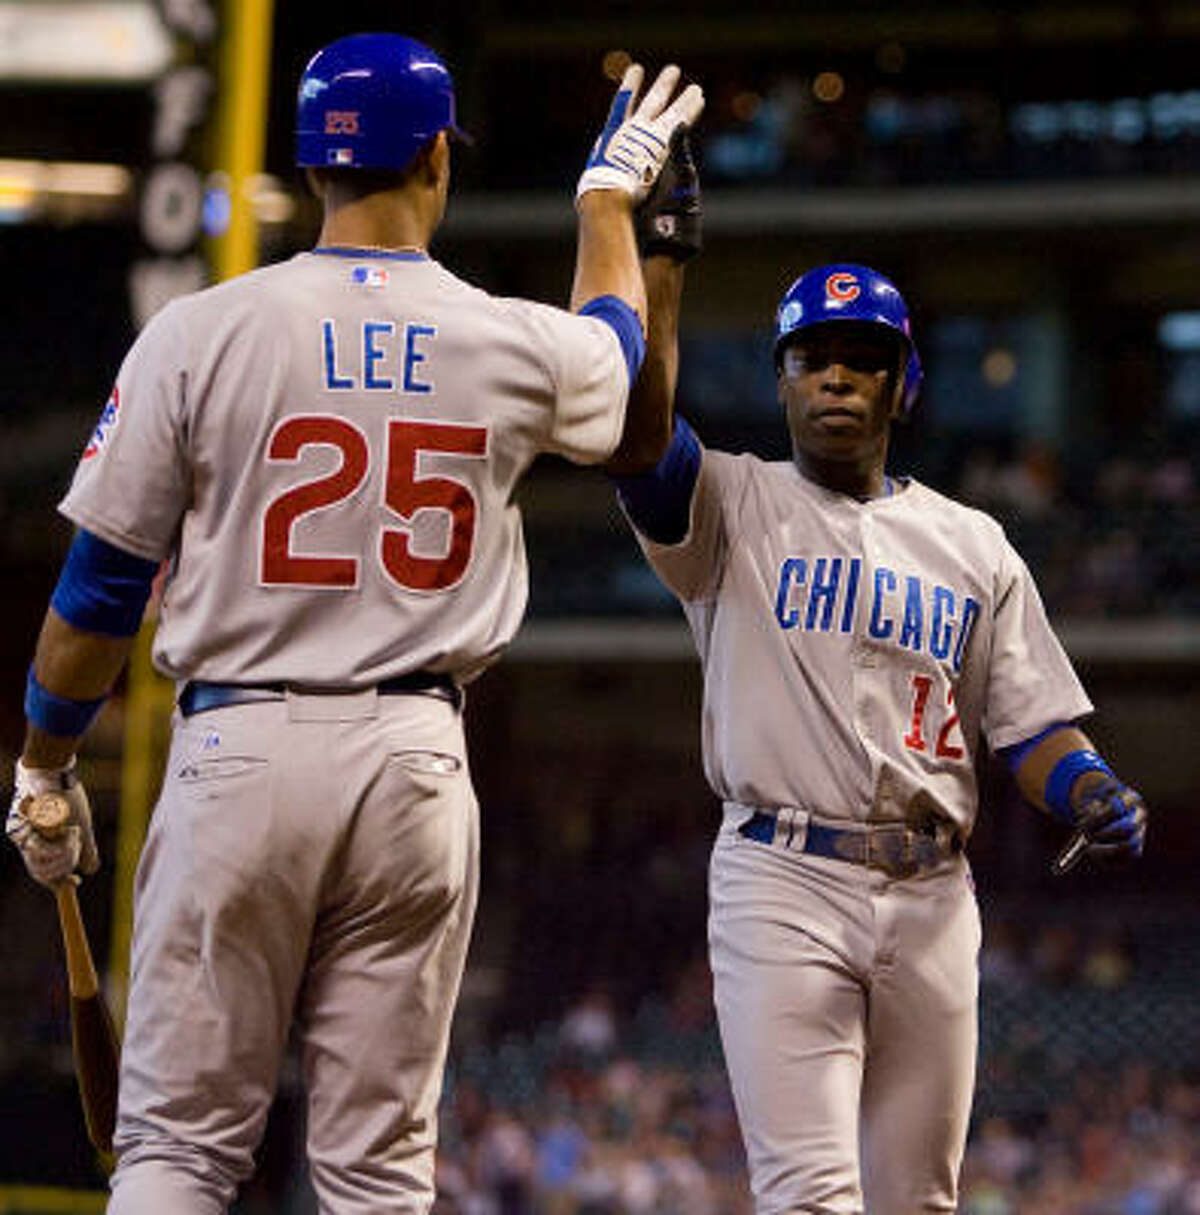 Cubs first basemen Derrek Lee celebrates a run scored by Alfonso Soriano in the first inning.